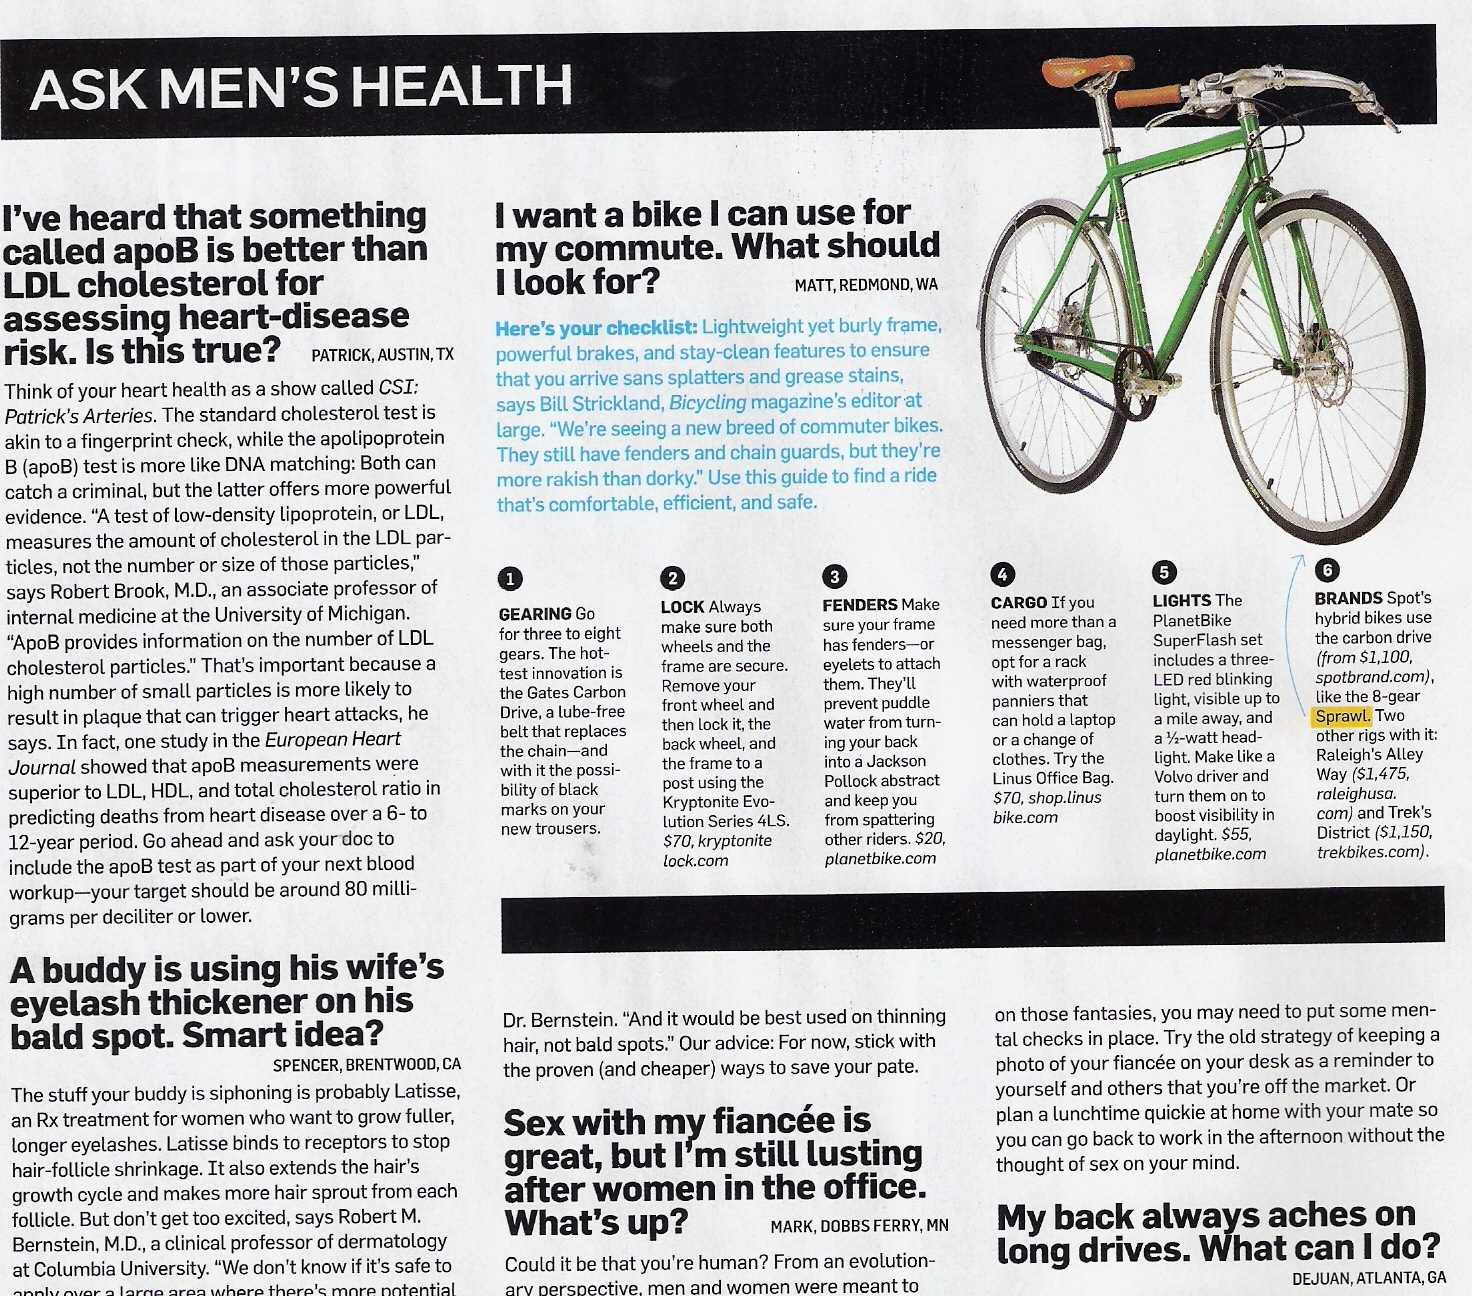 Men's Health Magazine called Gates Carbon Drive one of the